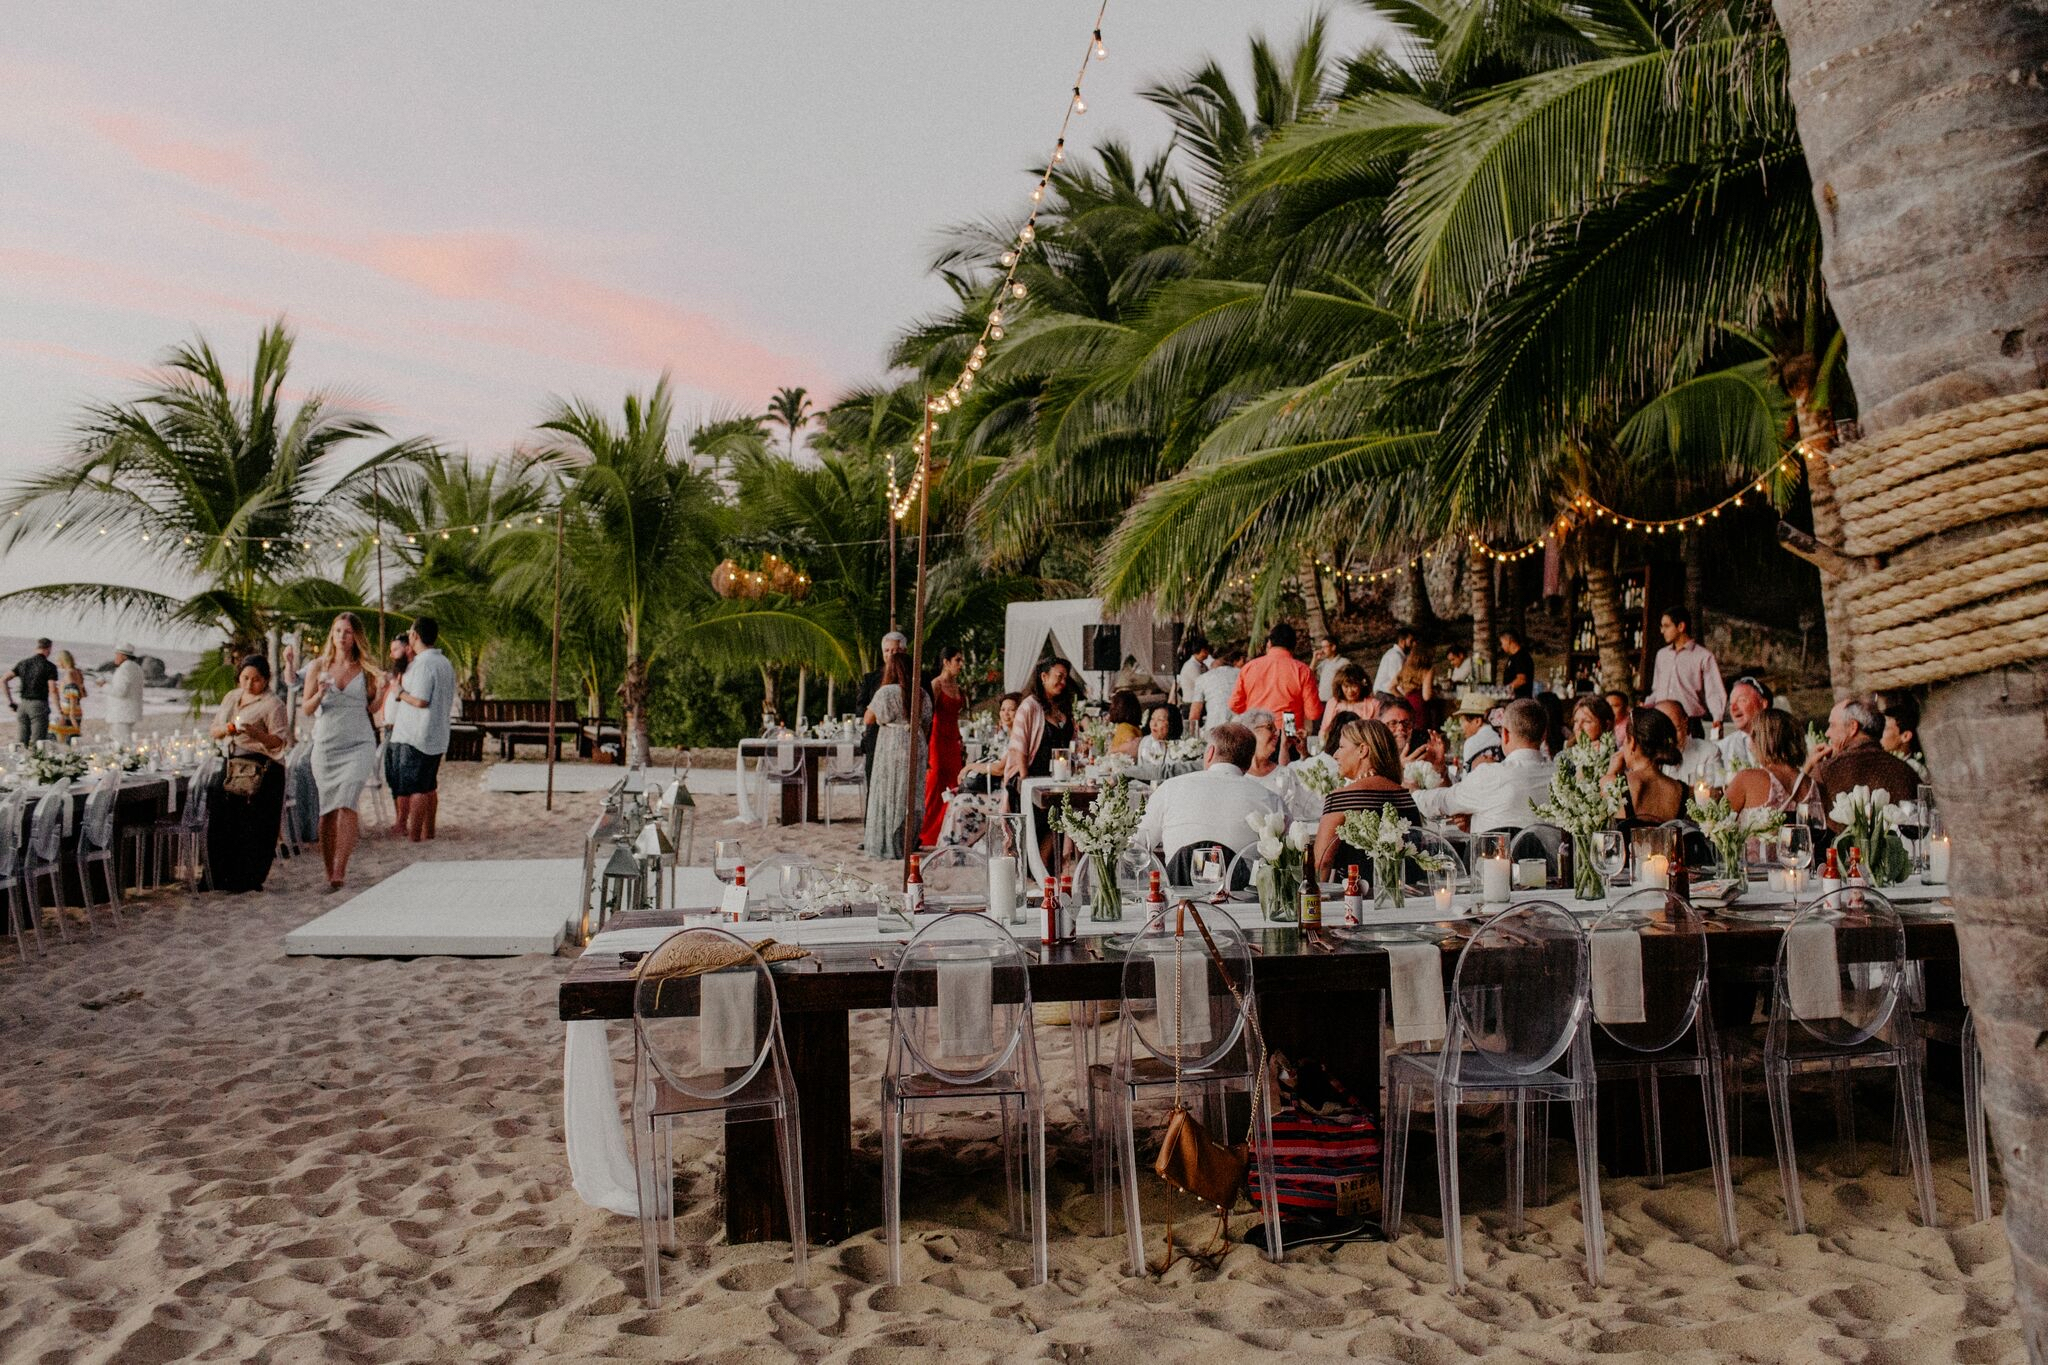 alexandra_celia_sayulita_wedding_britt_julio-1830_preview.jpg